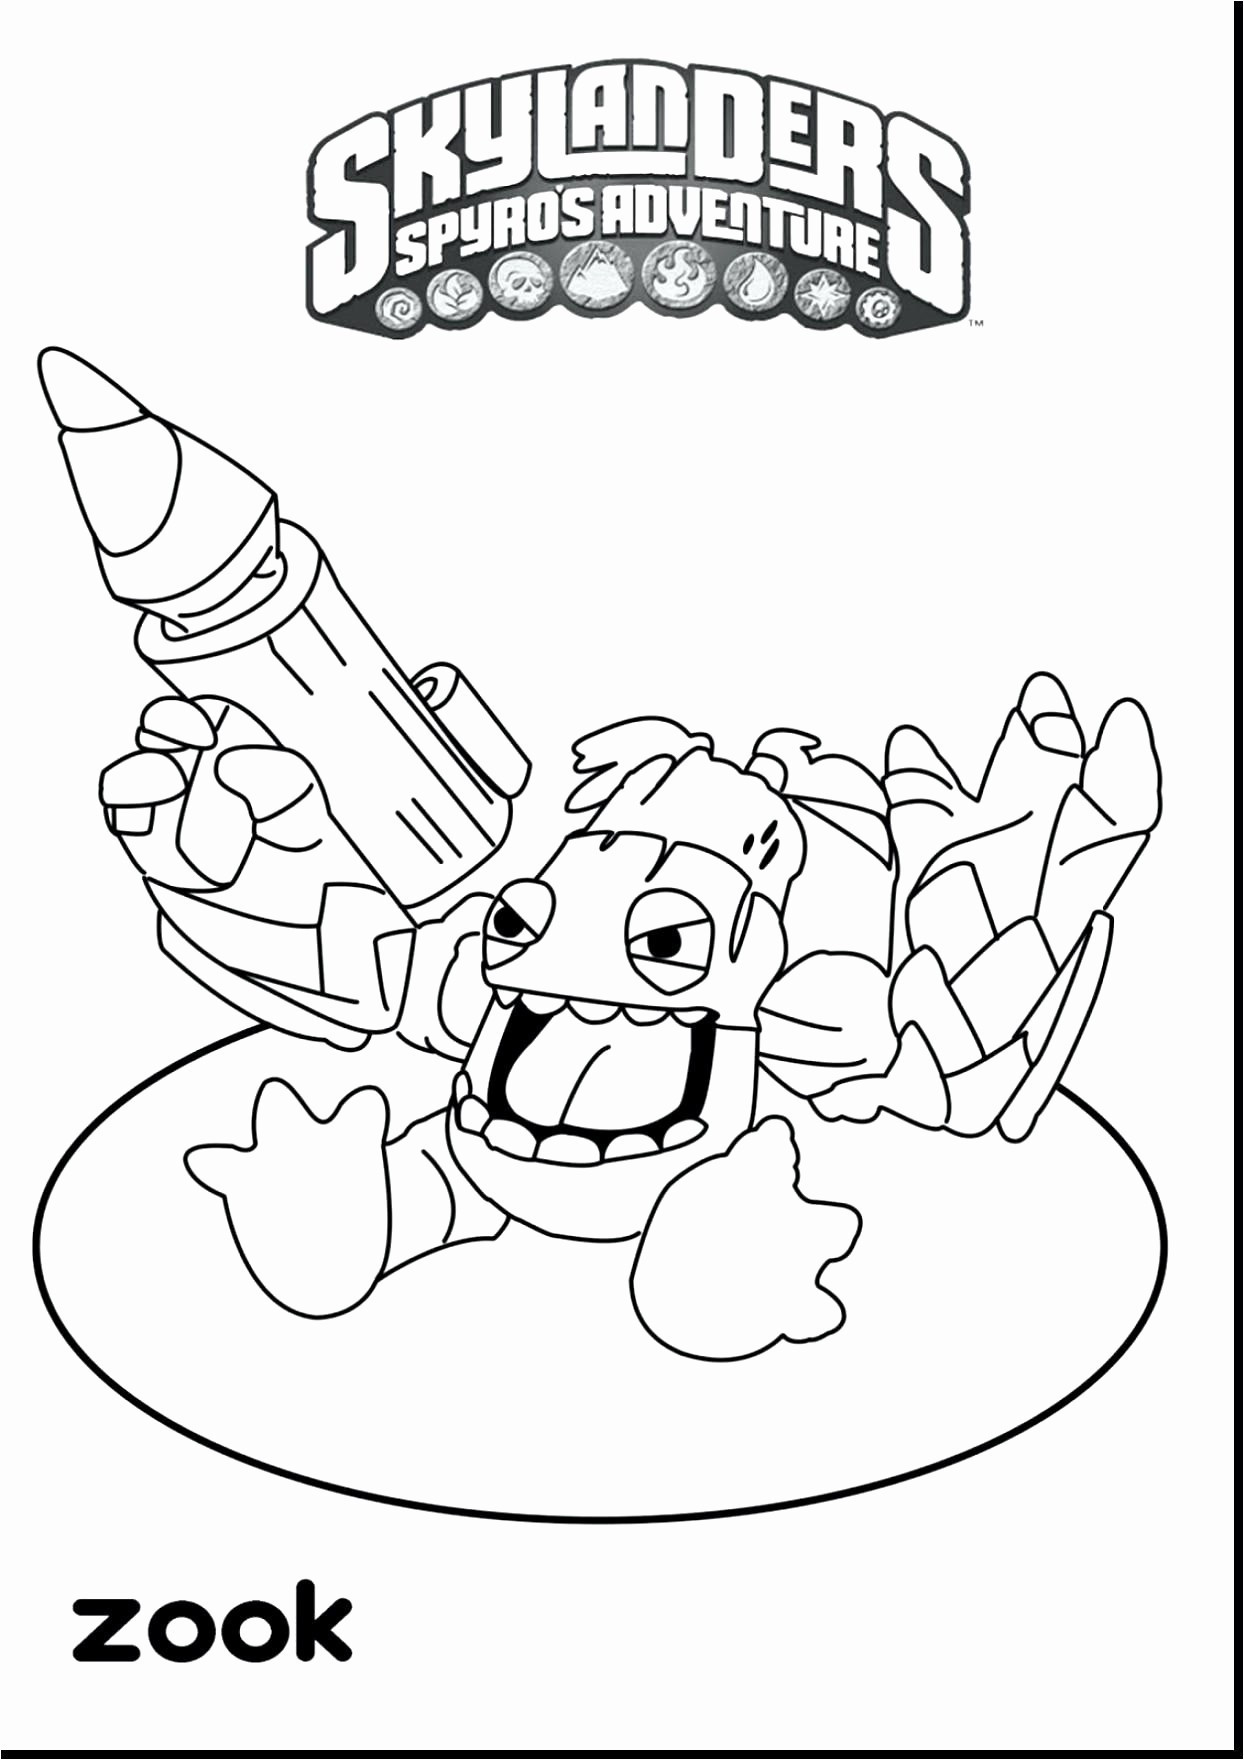 coloring pages that you can color online Download-Coloring Pages You Can Color line For Free Fresh Inspirational Quotes Coloring Pages Fresh Awesome Od Dog Coloring 1-n